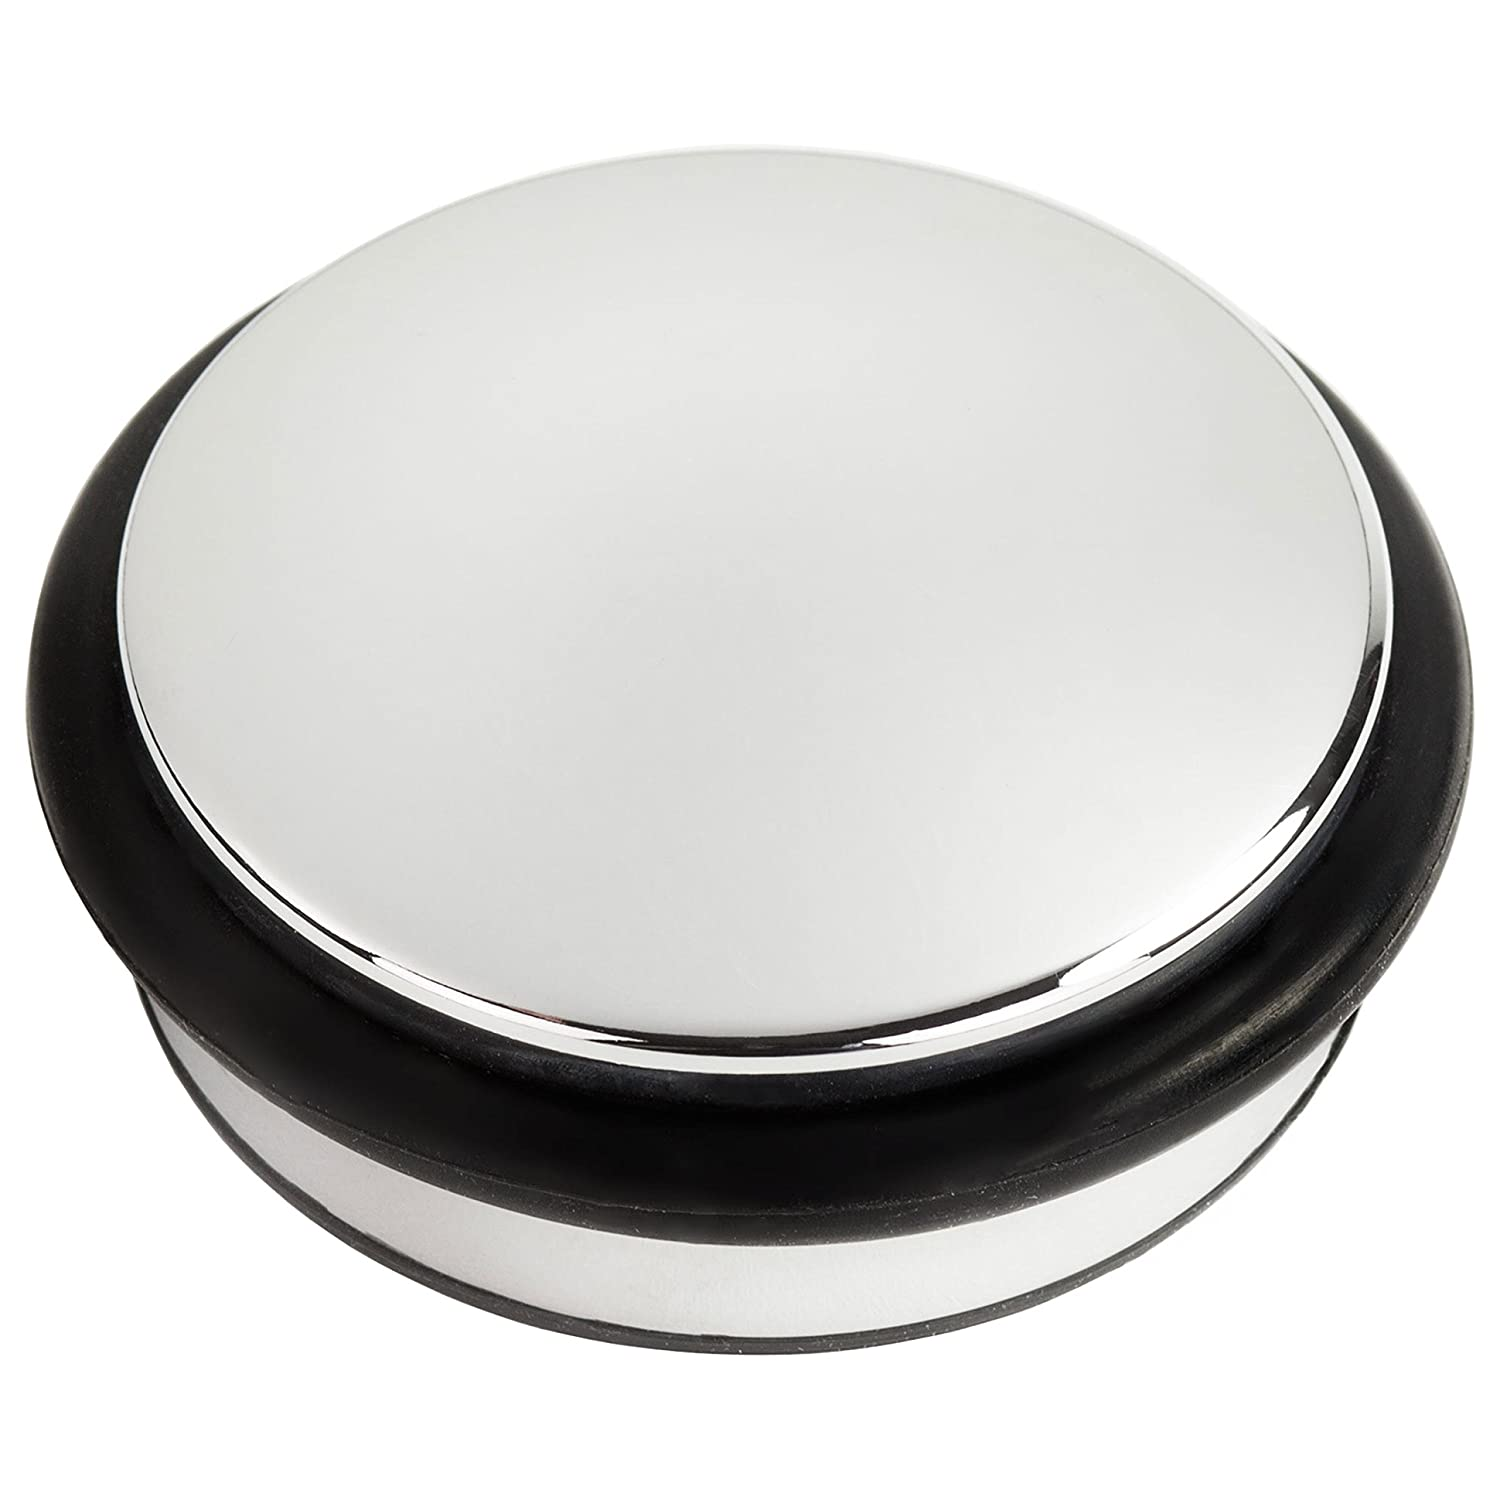 Andrew James Heavy Duty Chrome Door Stop | 10cm Diameter Round Metal Door Stopper with Rubber Protection Ring | 1.2kg Weight